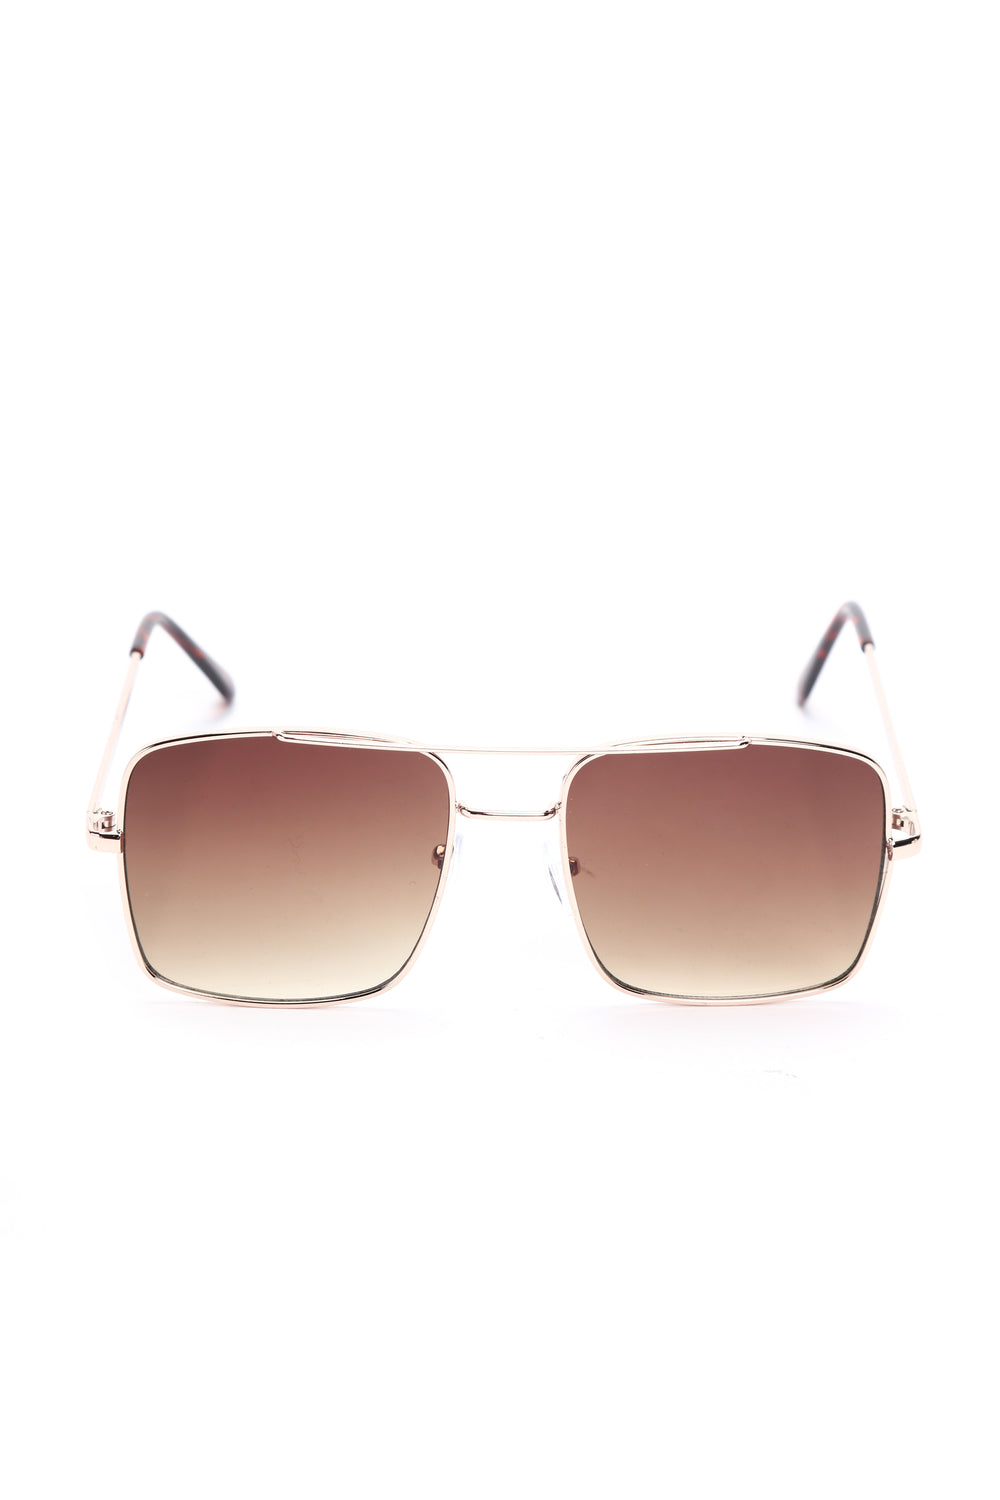 Deja Vu Sunglasses - Brown